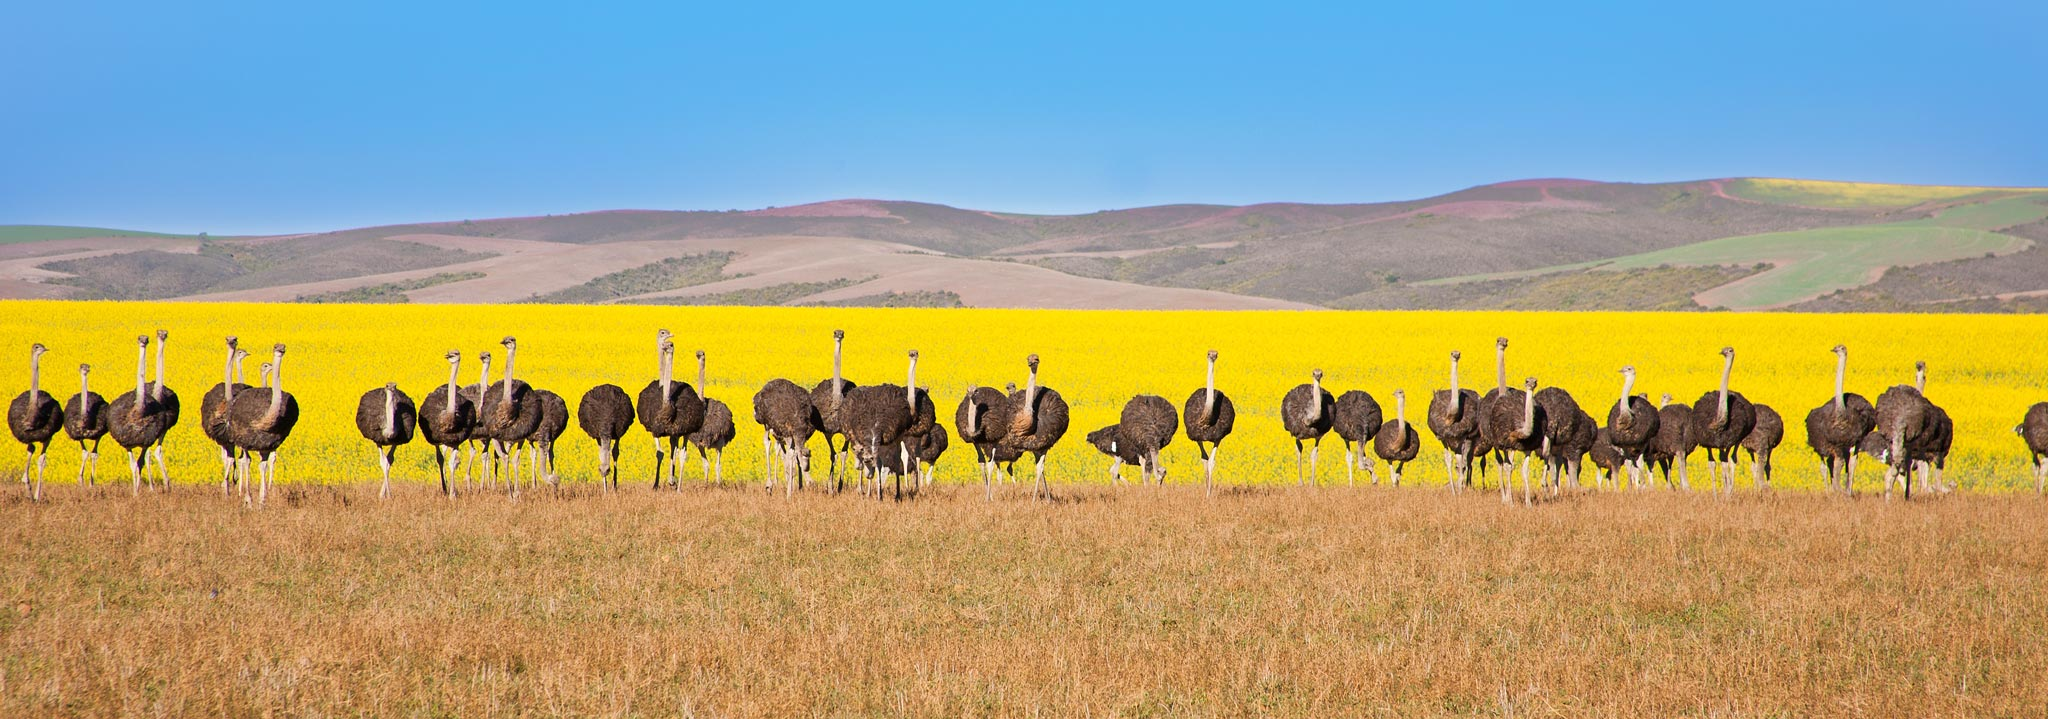 Ostriches in South Africa in forn of Canola